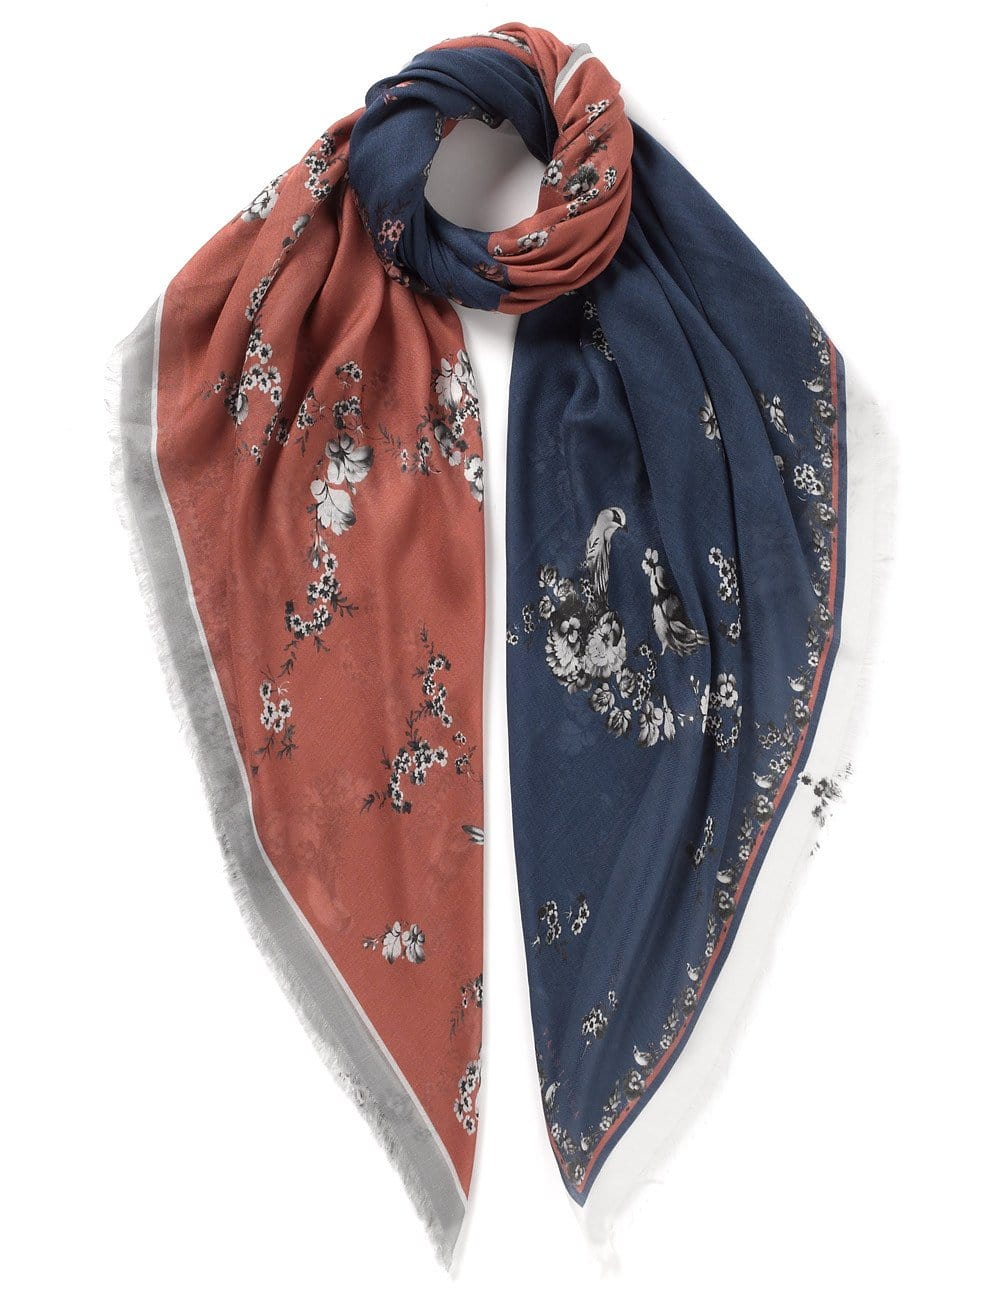 Vassilisa: Floral print duo scarf pink and navy | Accessories > Scarves,Accessories -  Hiphunters Shop